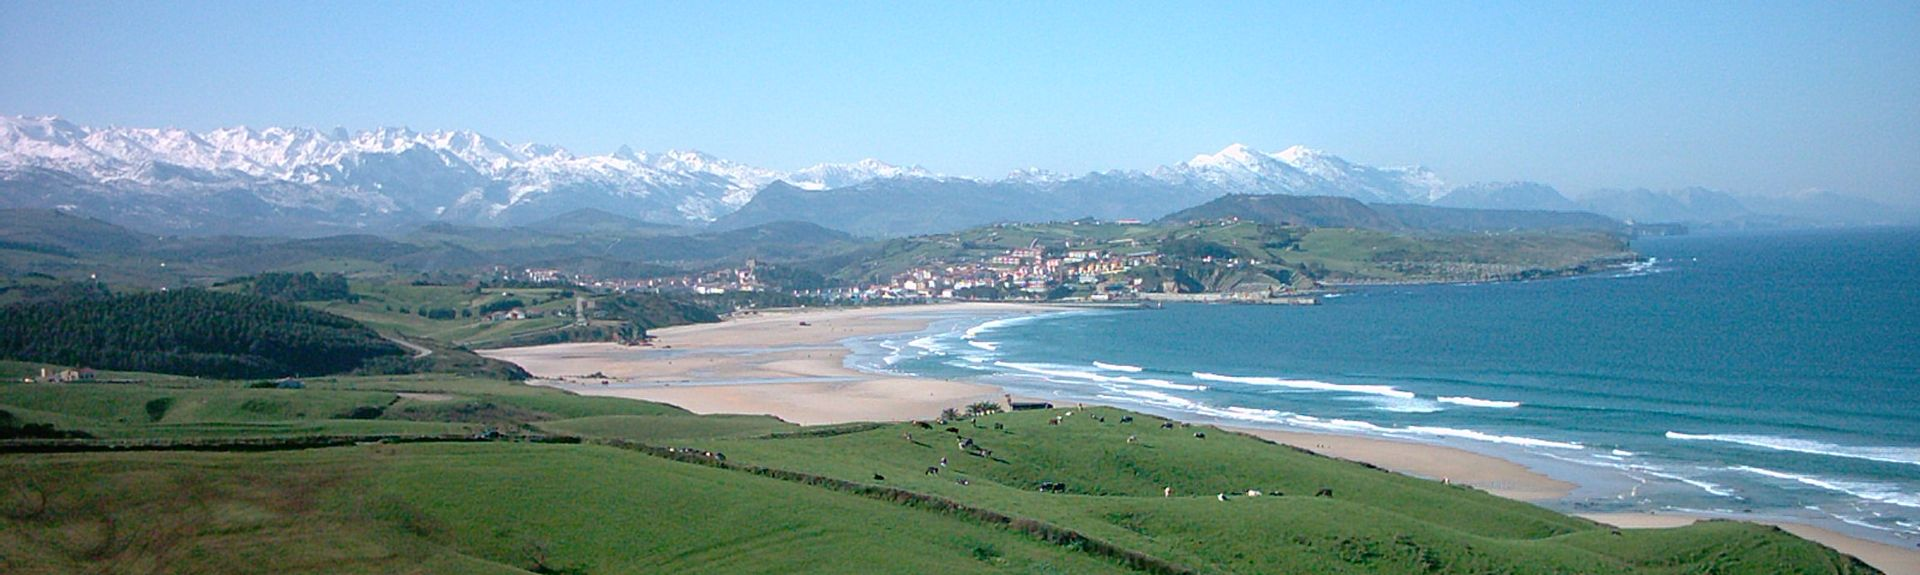 Lamadrid, Cantabria, Spain